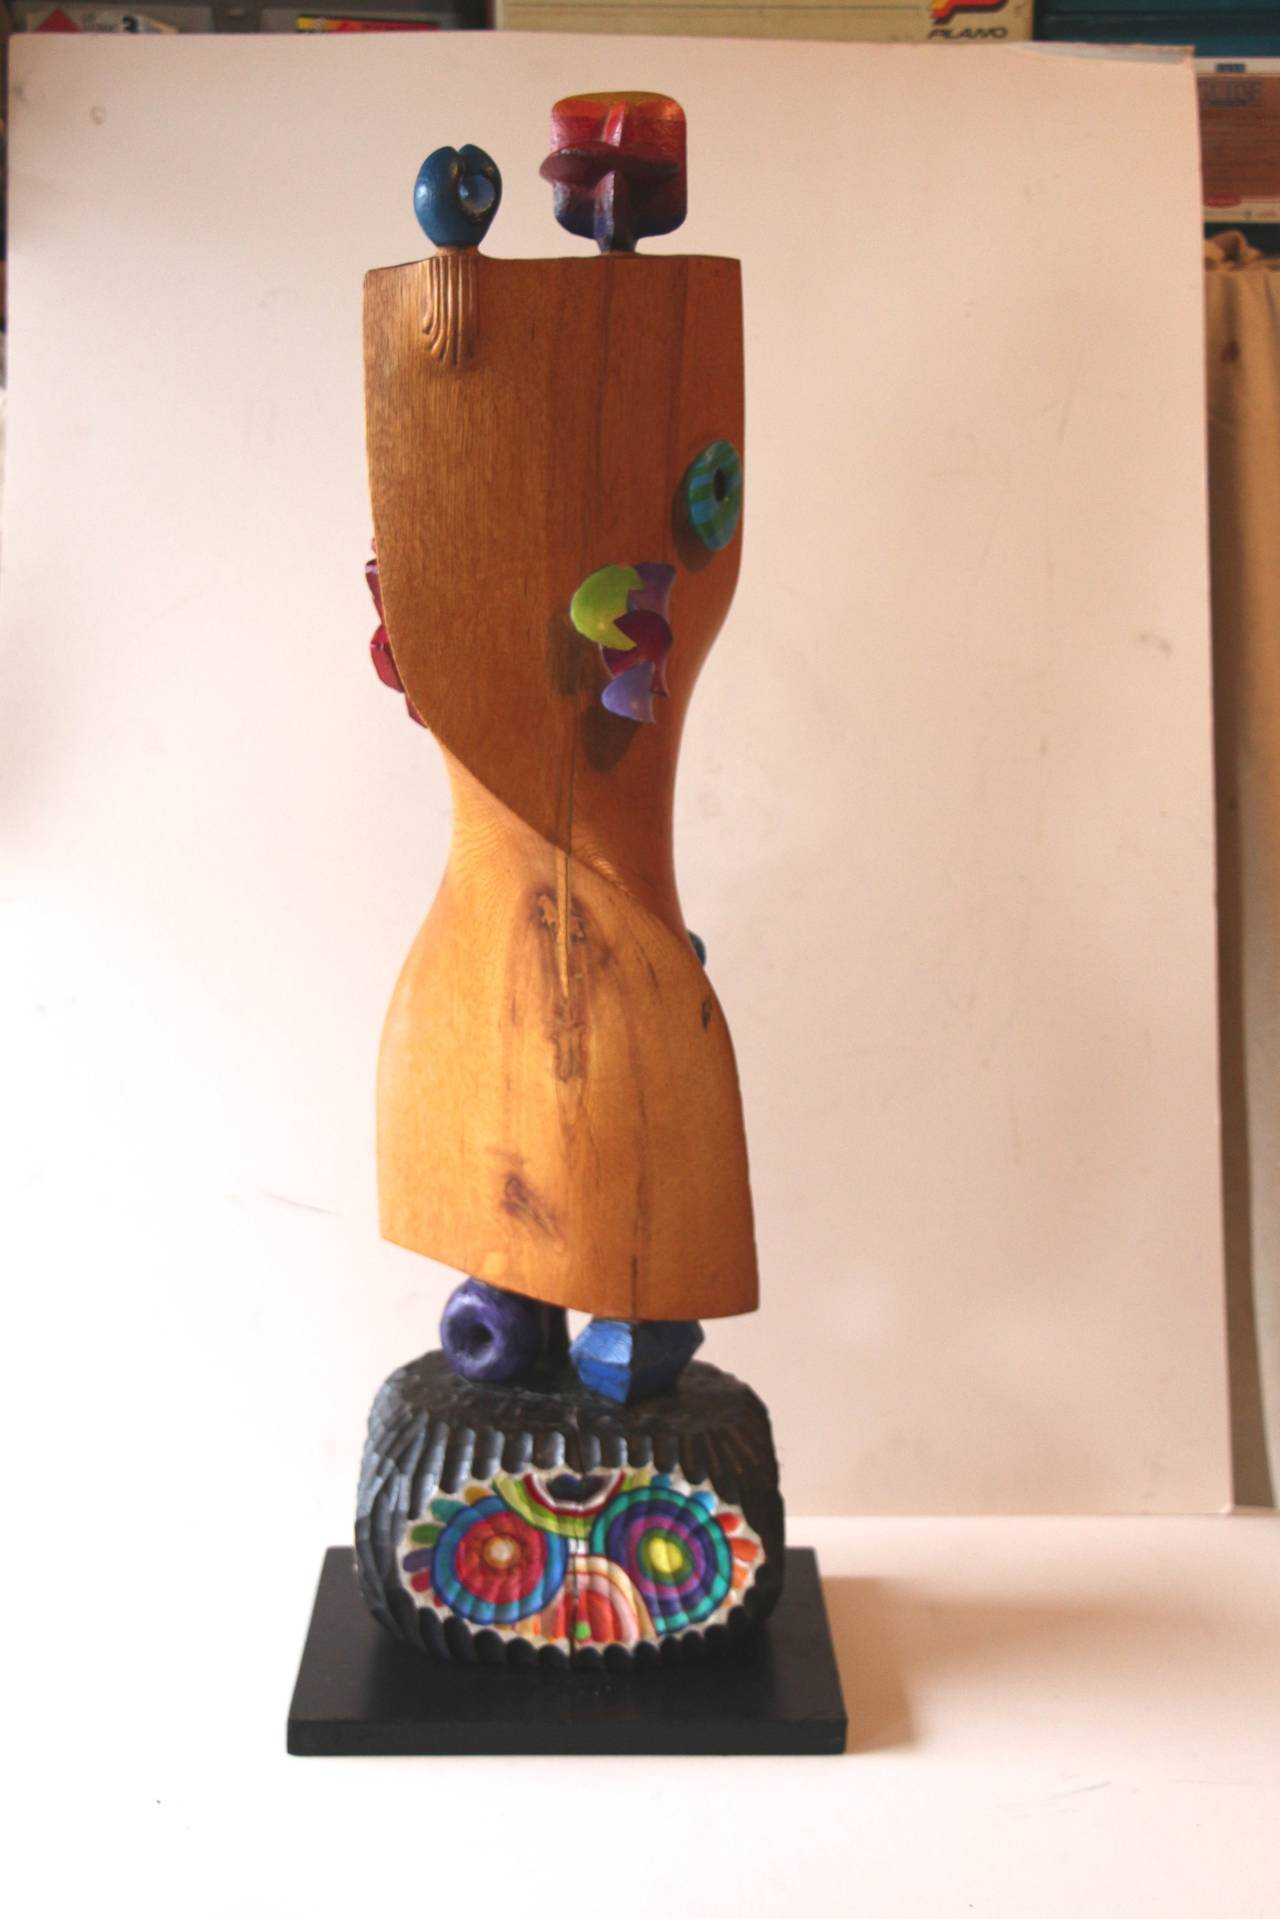 A wonderful wood sculpture by the noted NJ artist Fred Scumm. It is inscribed near the base with no date. Likely from the late 1980s or early 1990s. Colorful and whimsical. The artist statement follows from a 2007 article; Fred Schumm does not view